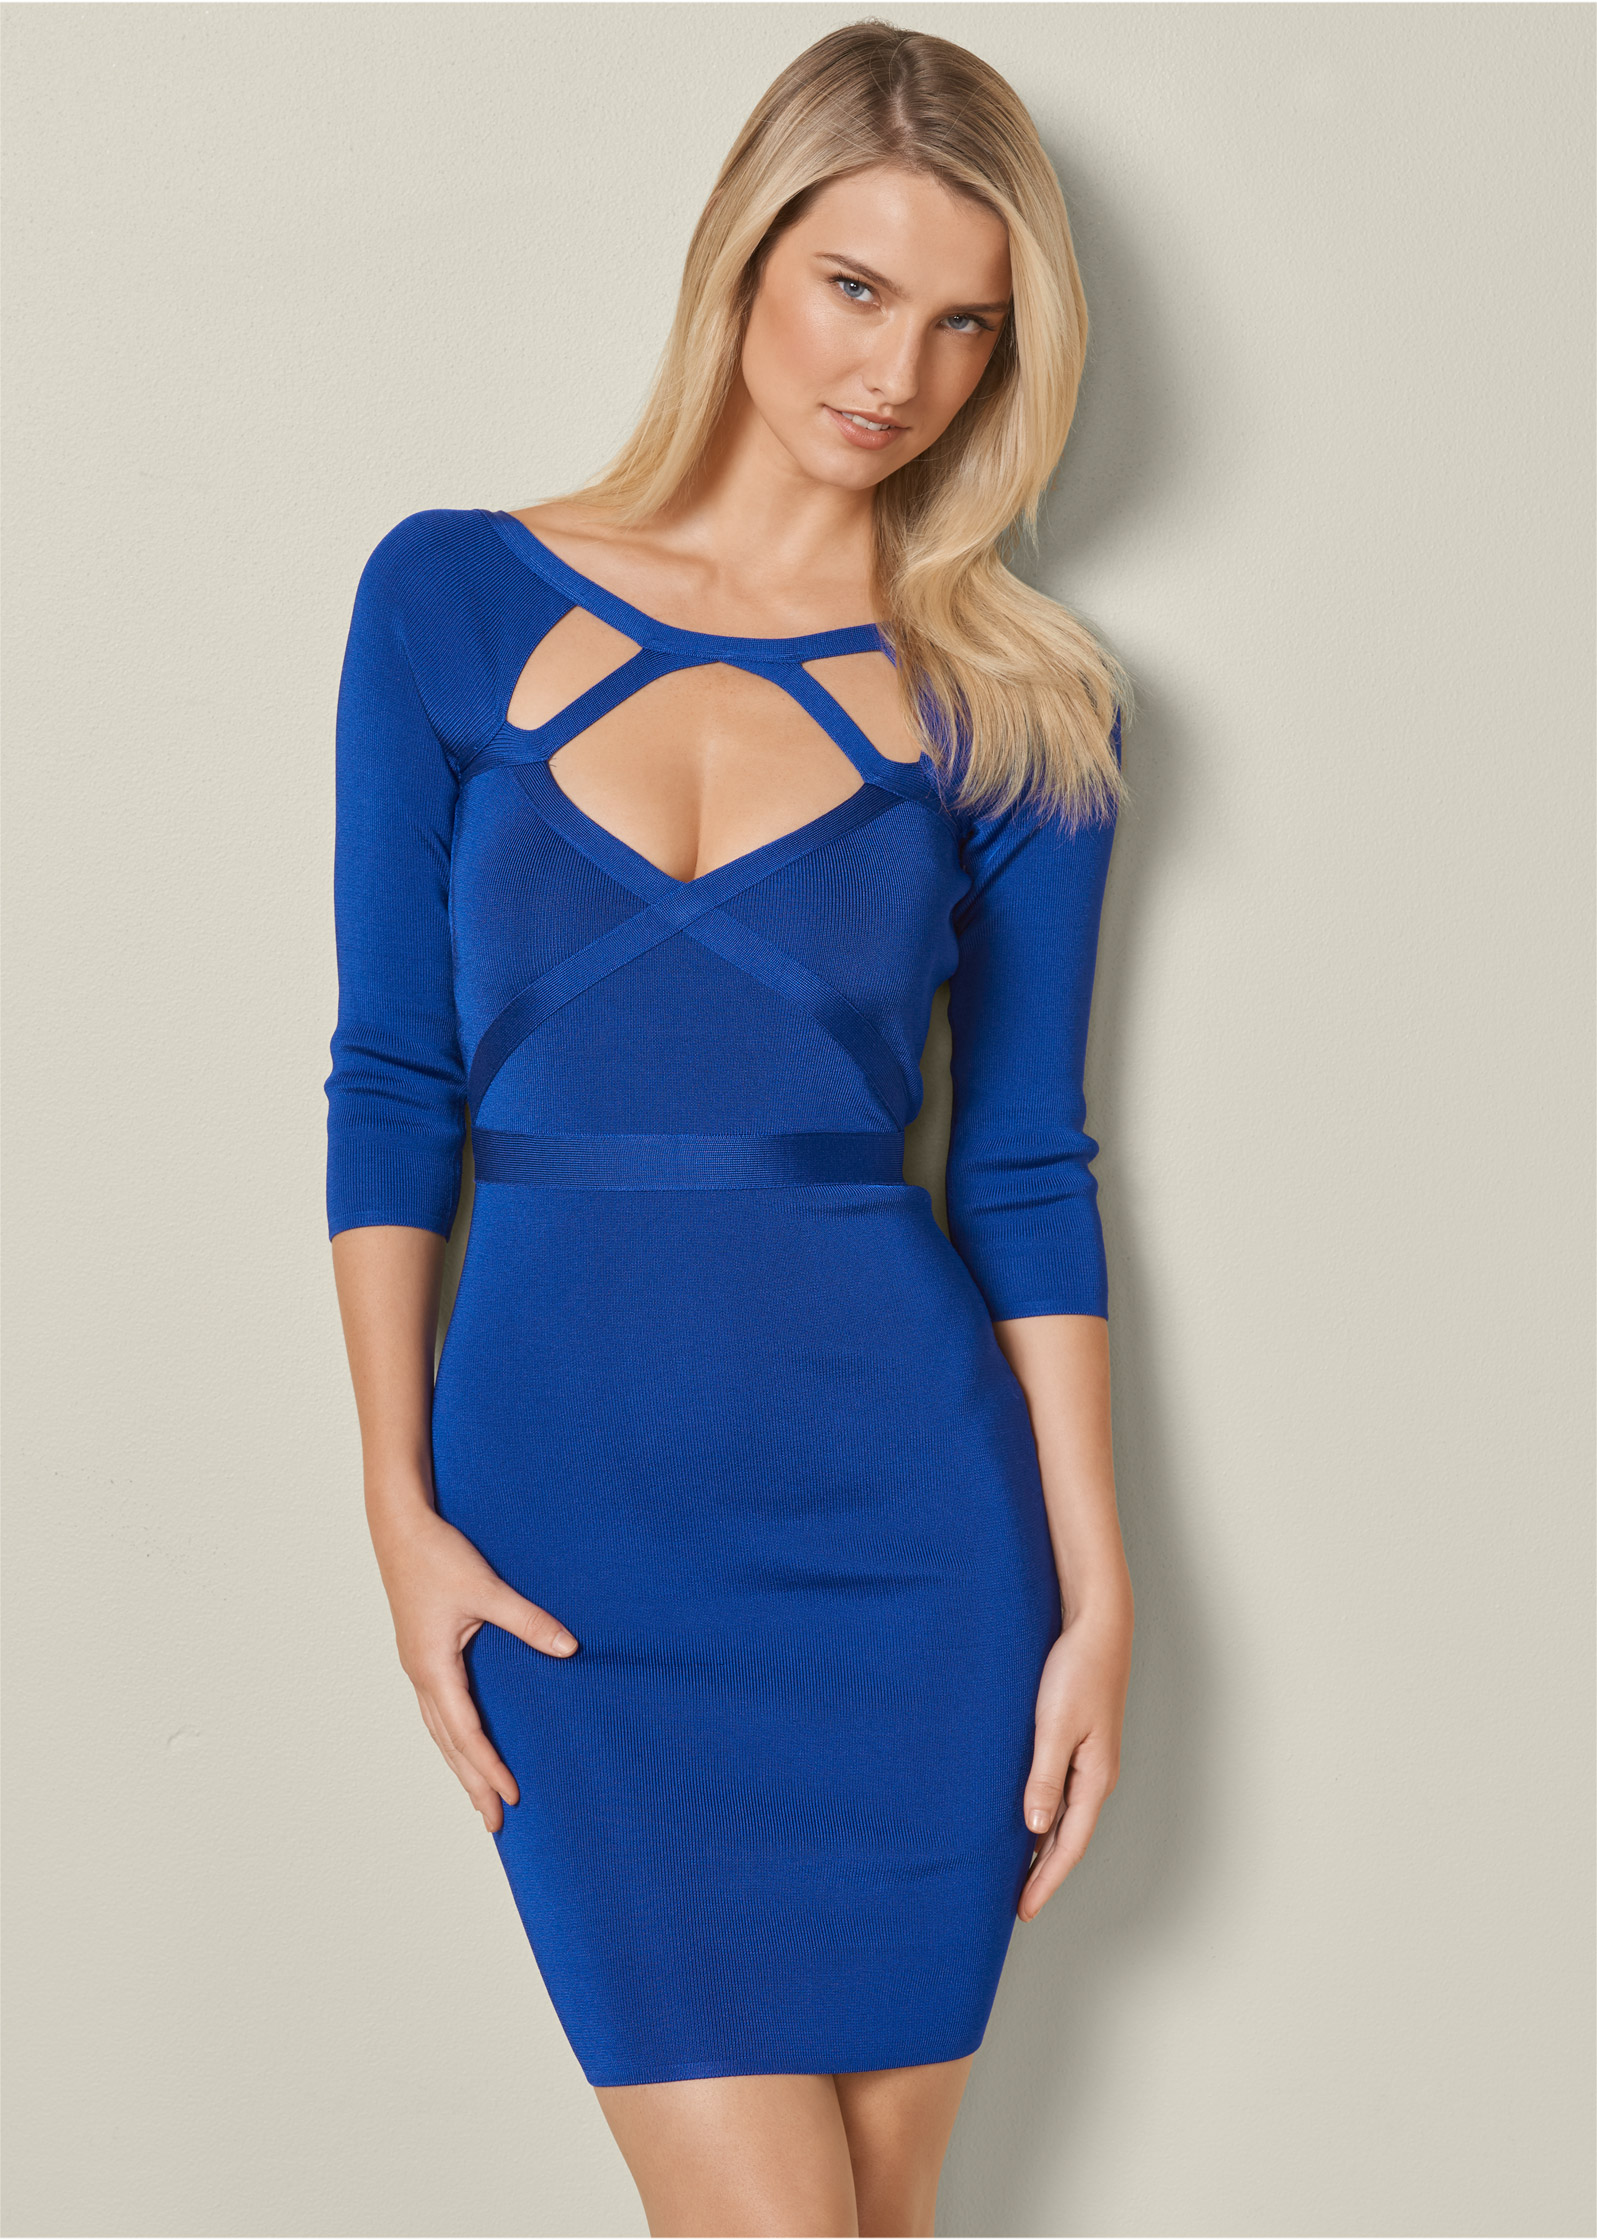 SLIMMING CUT OUT DRESS in Blue | VENUS